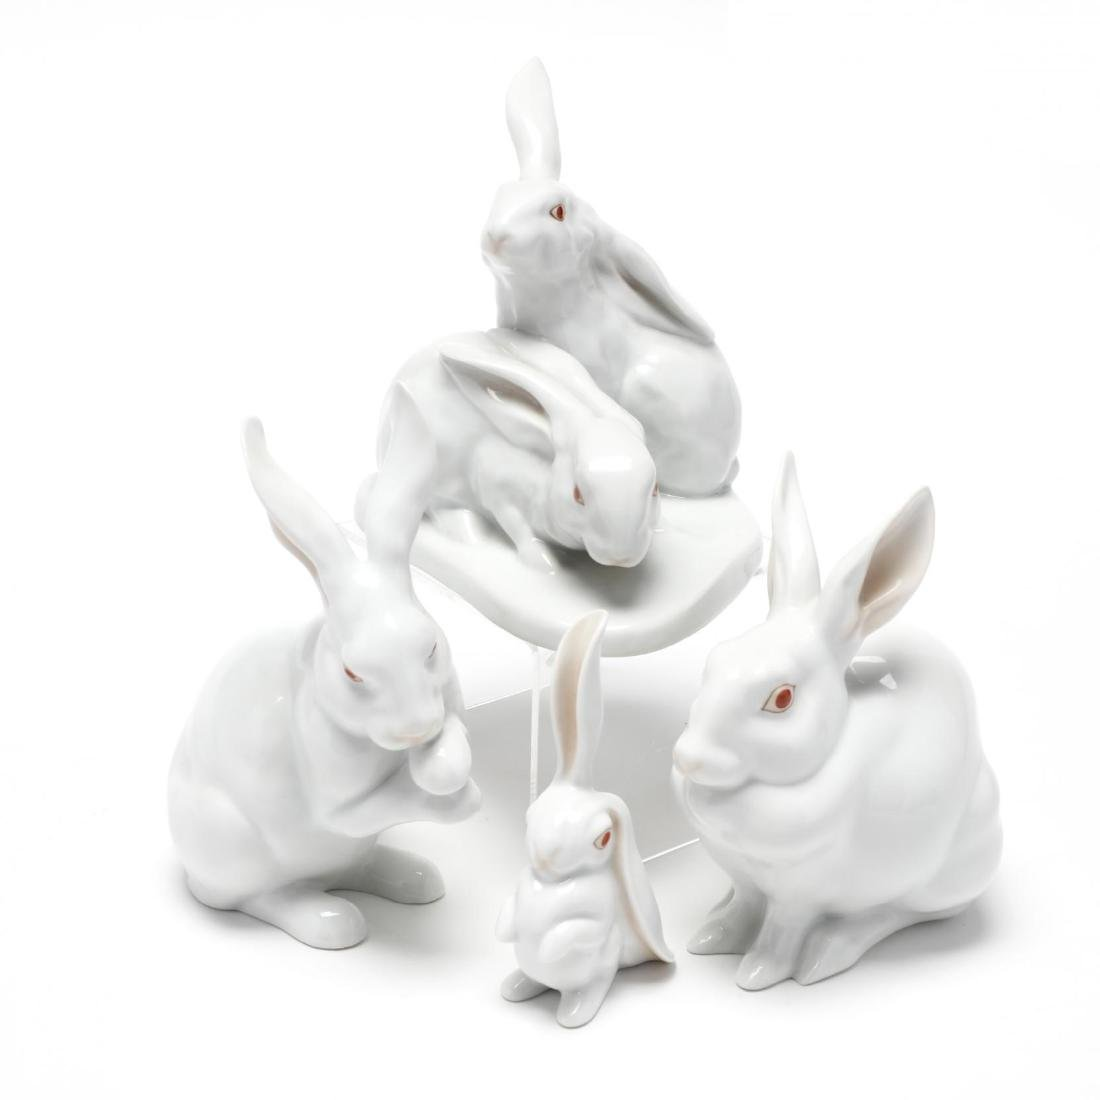 Four Herend Natural Porcelain Rabbits